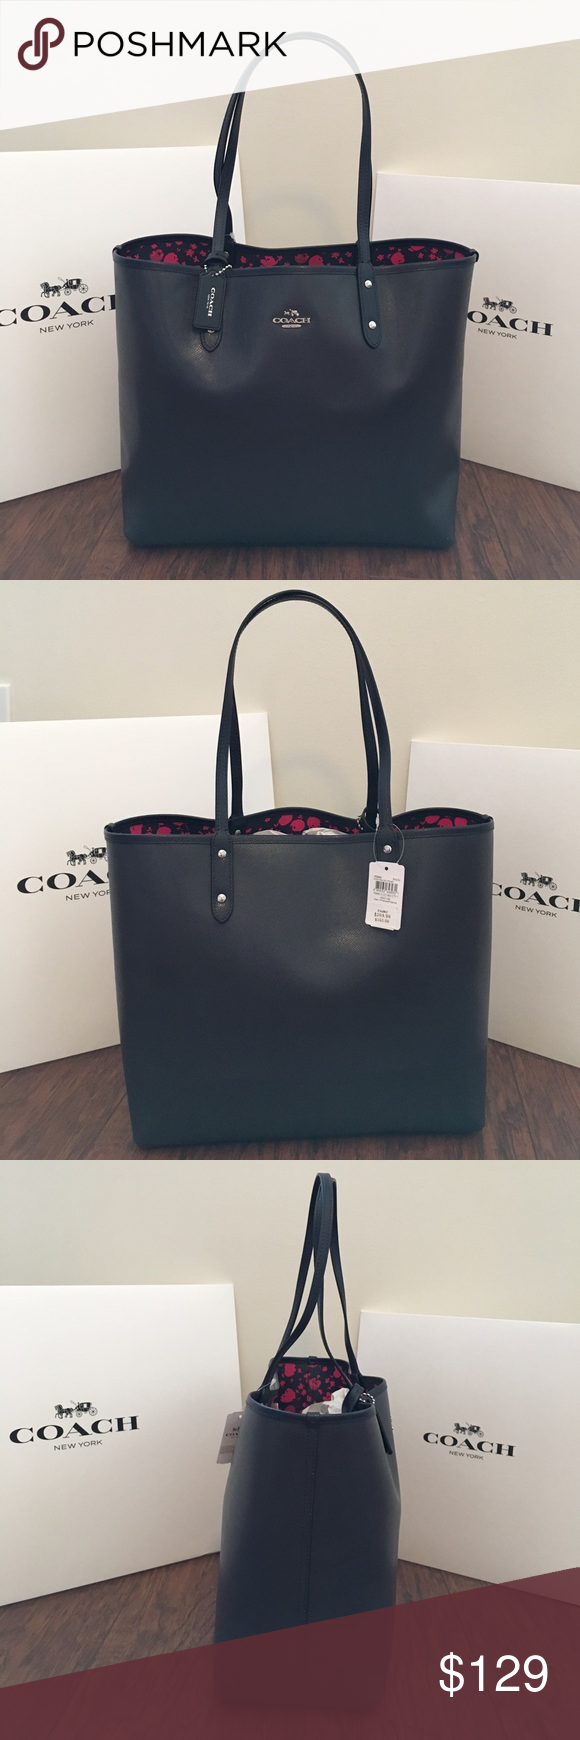 9cbad8b85 COACH Reversible City Tote Pink Ruby/Midnight Blue Guaranteed Authentic! Coach  reversible city tote